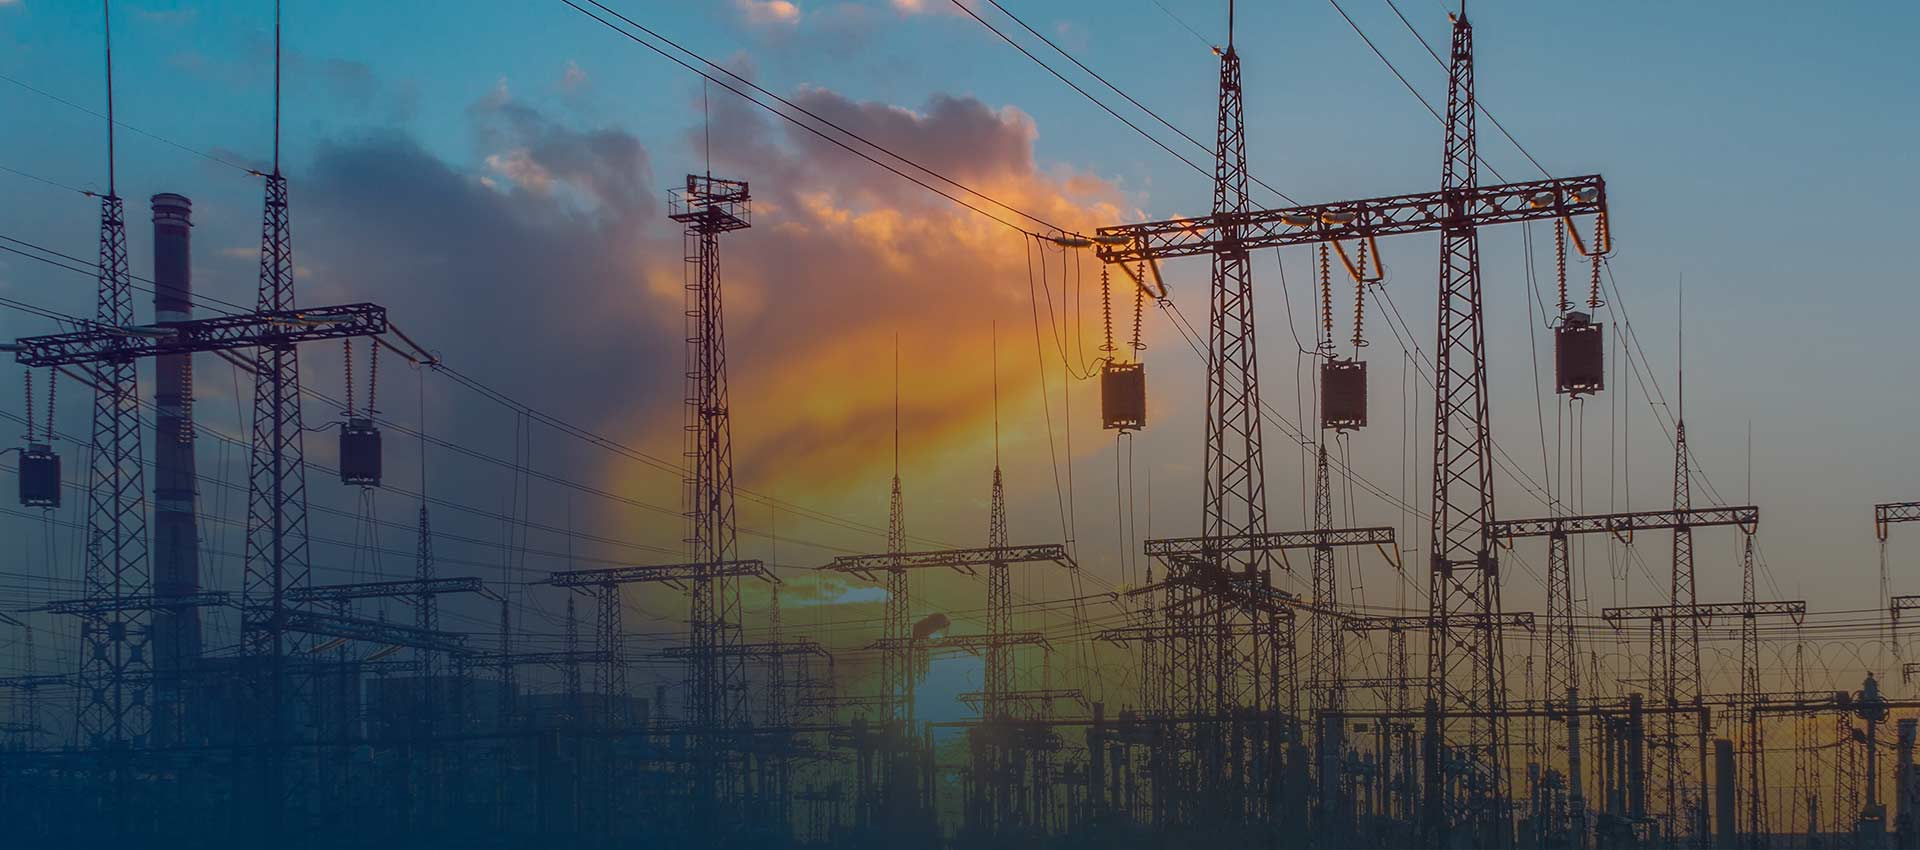 Duke Energy uses Health and Risk Management Strategies to extend the life of their utility transmission assets